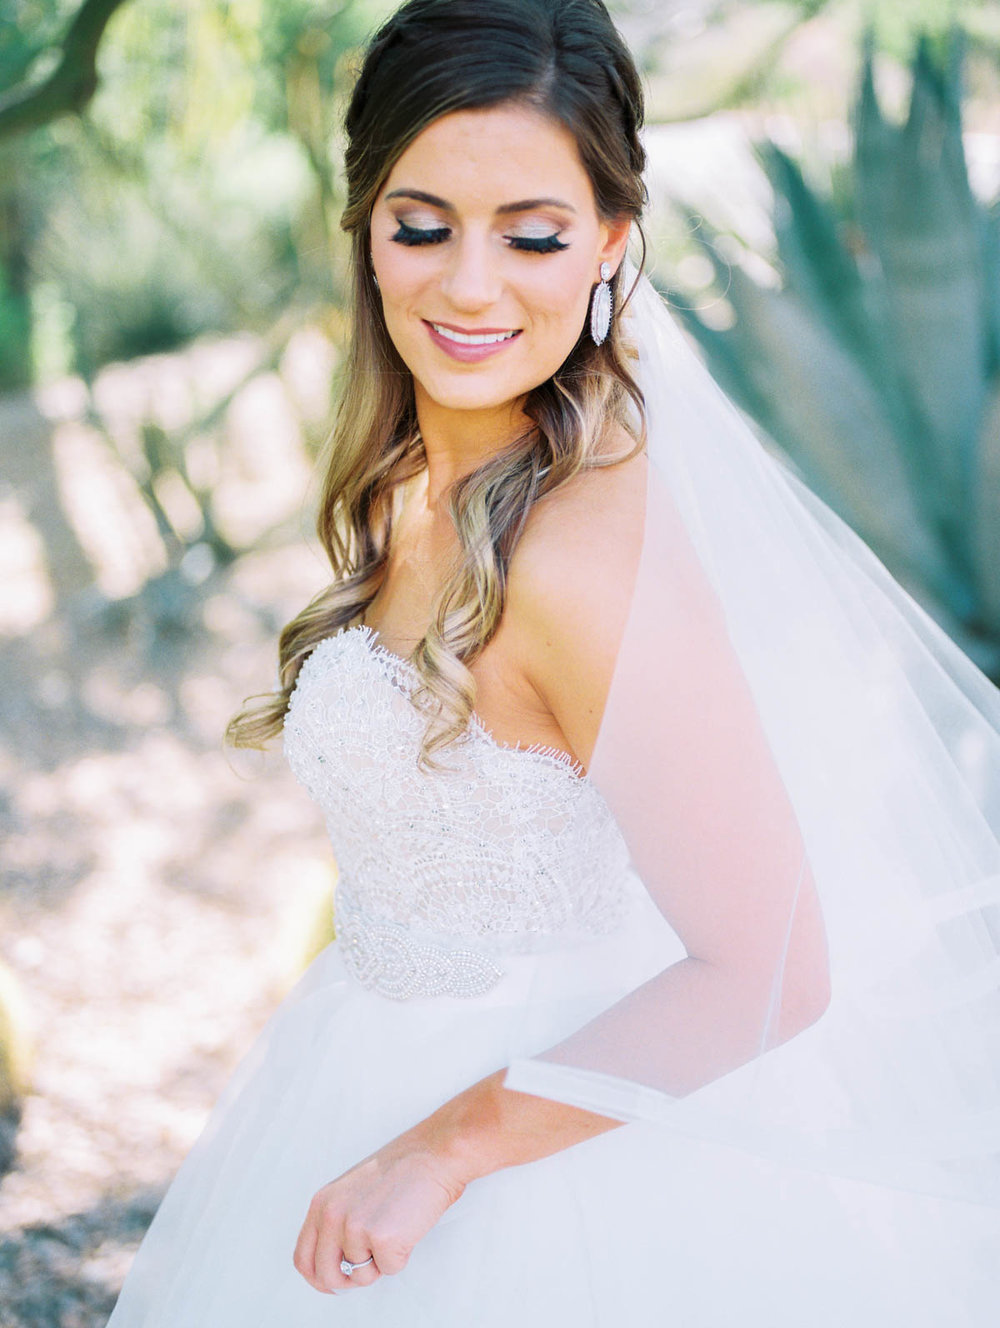 Tucson bride captured by Tucson Wedding Photographers Betsy & John